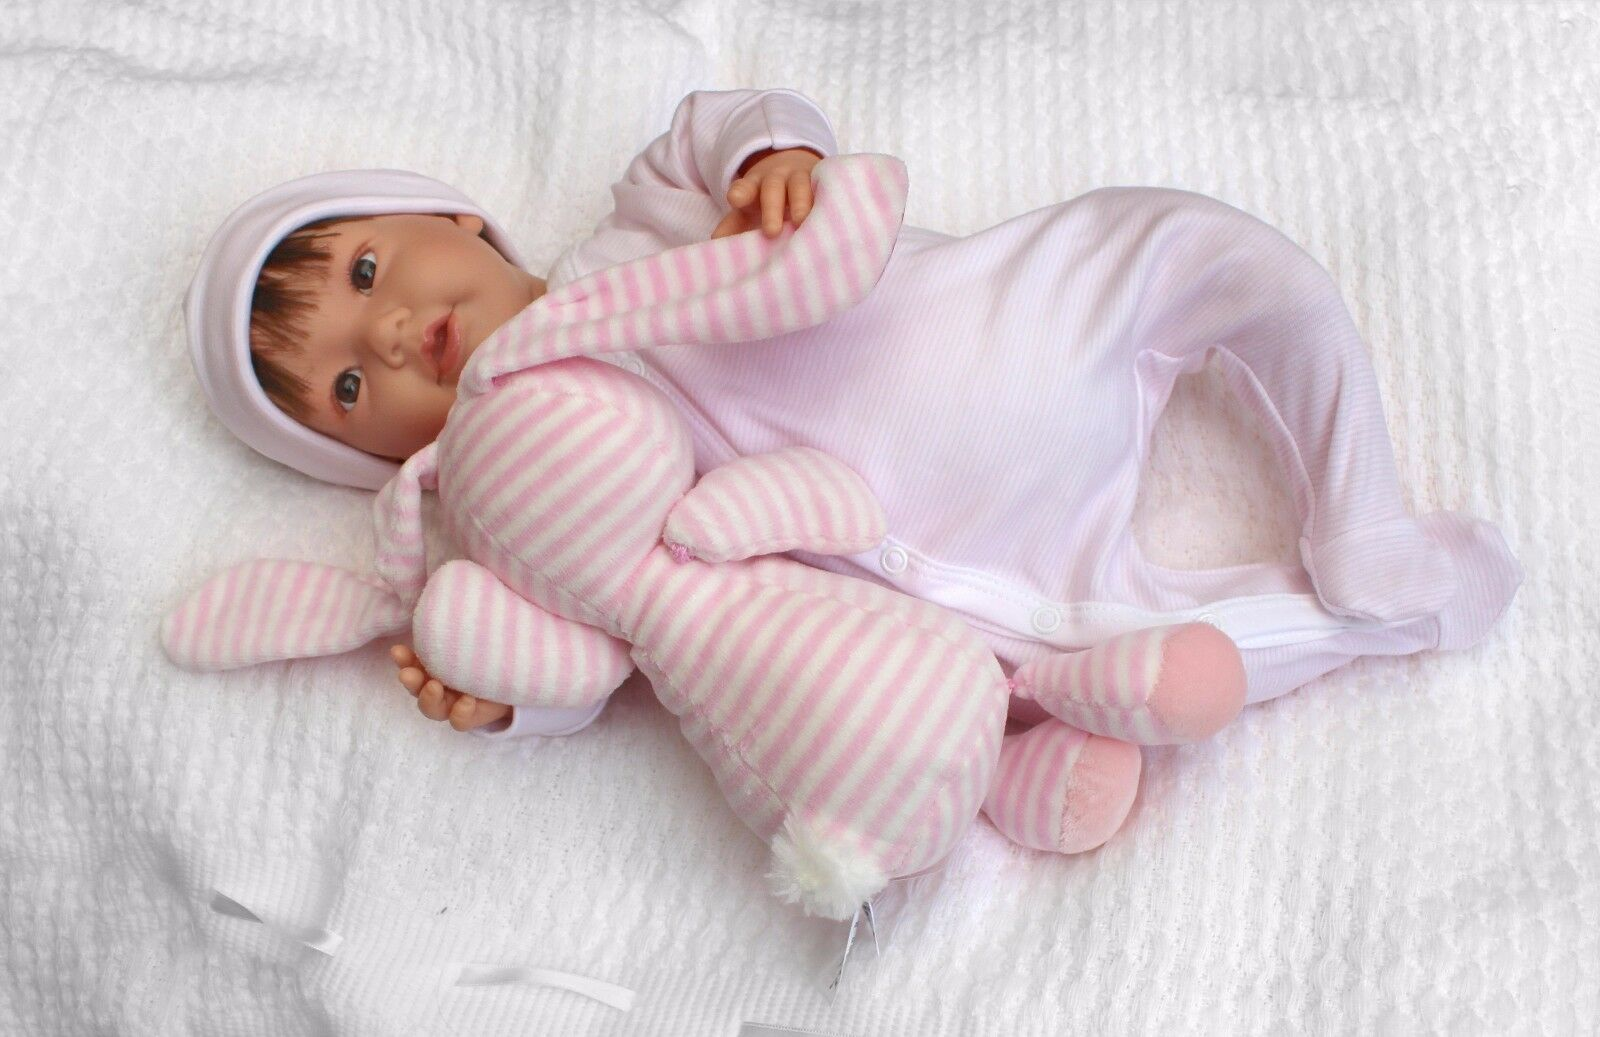 Imogen Realistic Baby Dolls Lifelike Newborn Jointed Girl Doll (or for reborn)